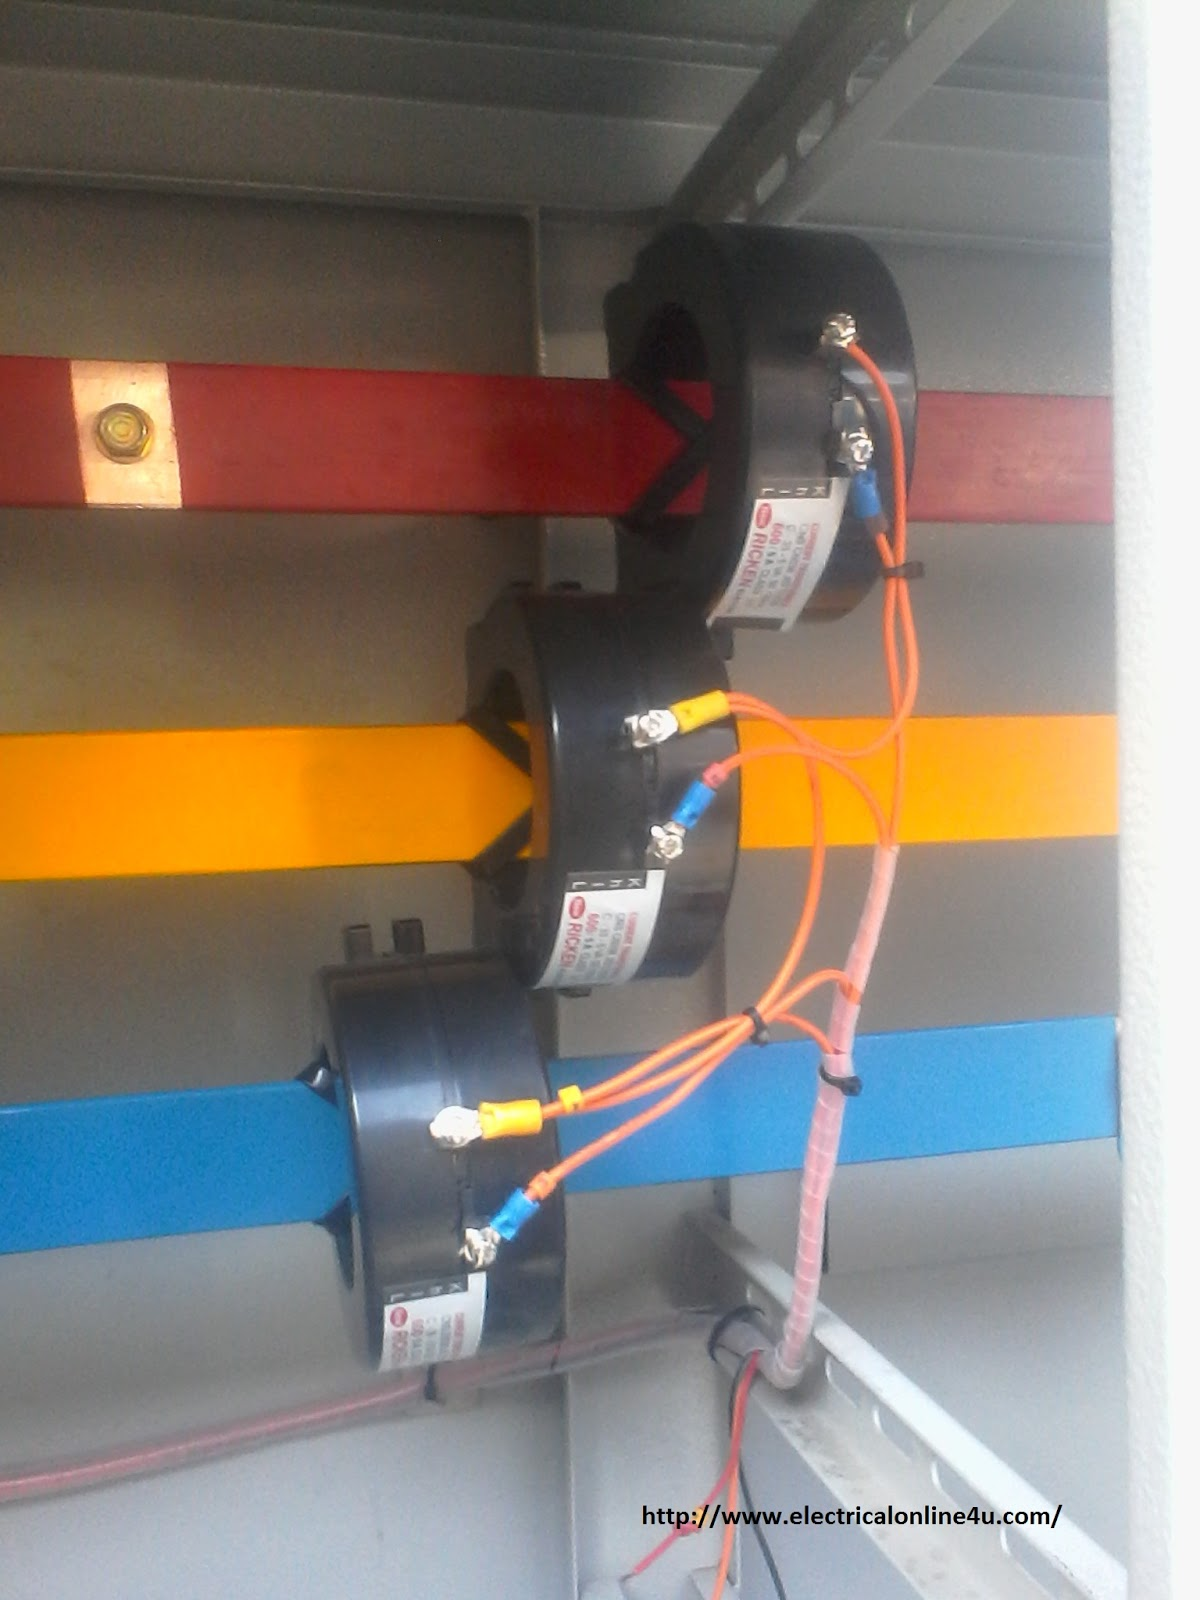 current%2Btransformer%2Binstillation%2Bfor%2Bthree%2Bphase%2Bwiring current transformer installation for three phase power supply ct Basic Electrical Wiring Diagrams at eliteediting.co